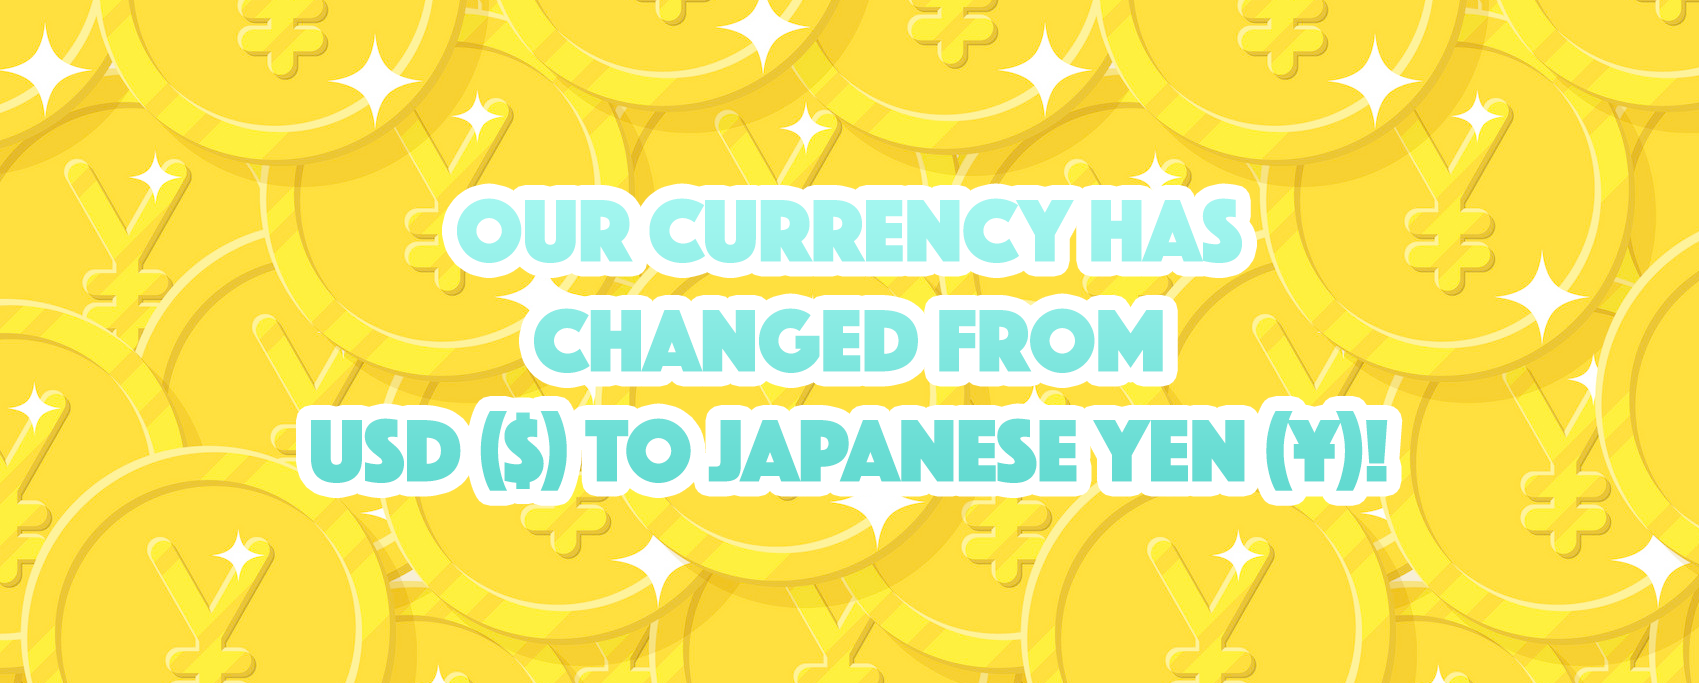 Accepted Currency will be YEN instead of USD